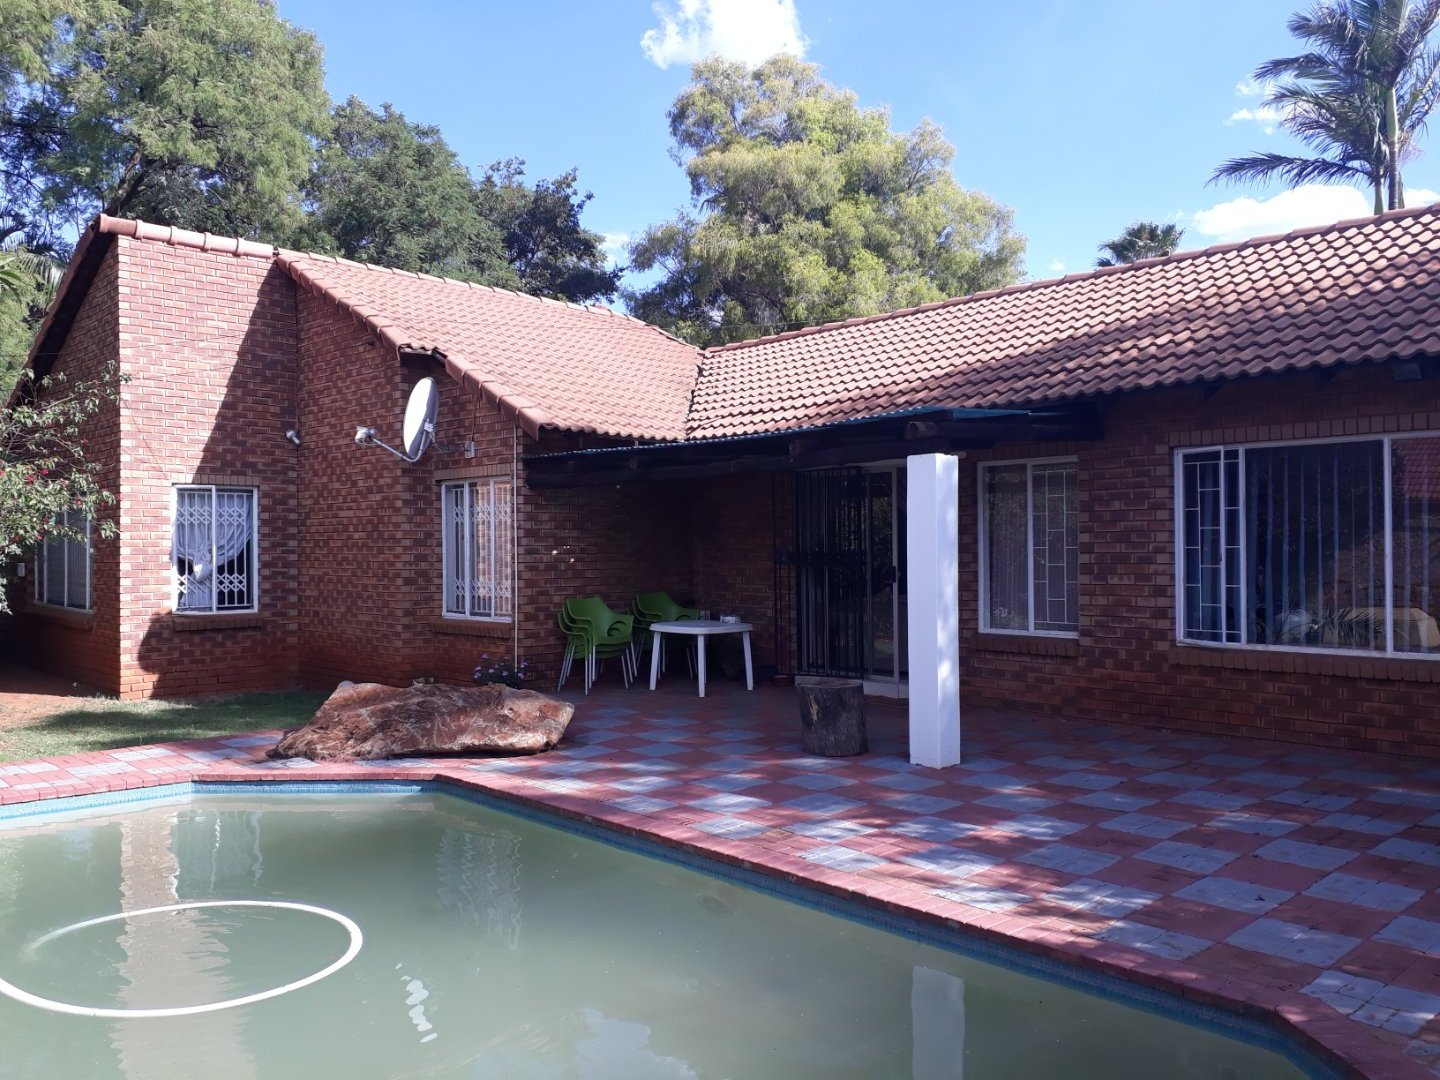 3 BEDROOMS HOUSE FOR SALE IN THE ORCHARDS